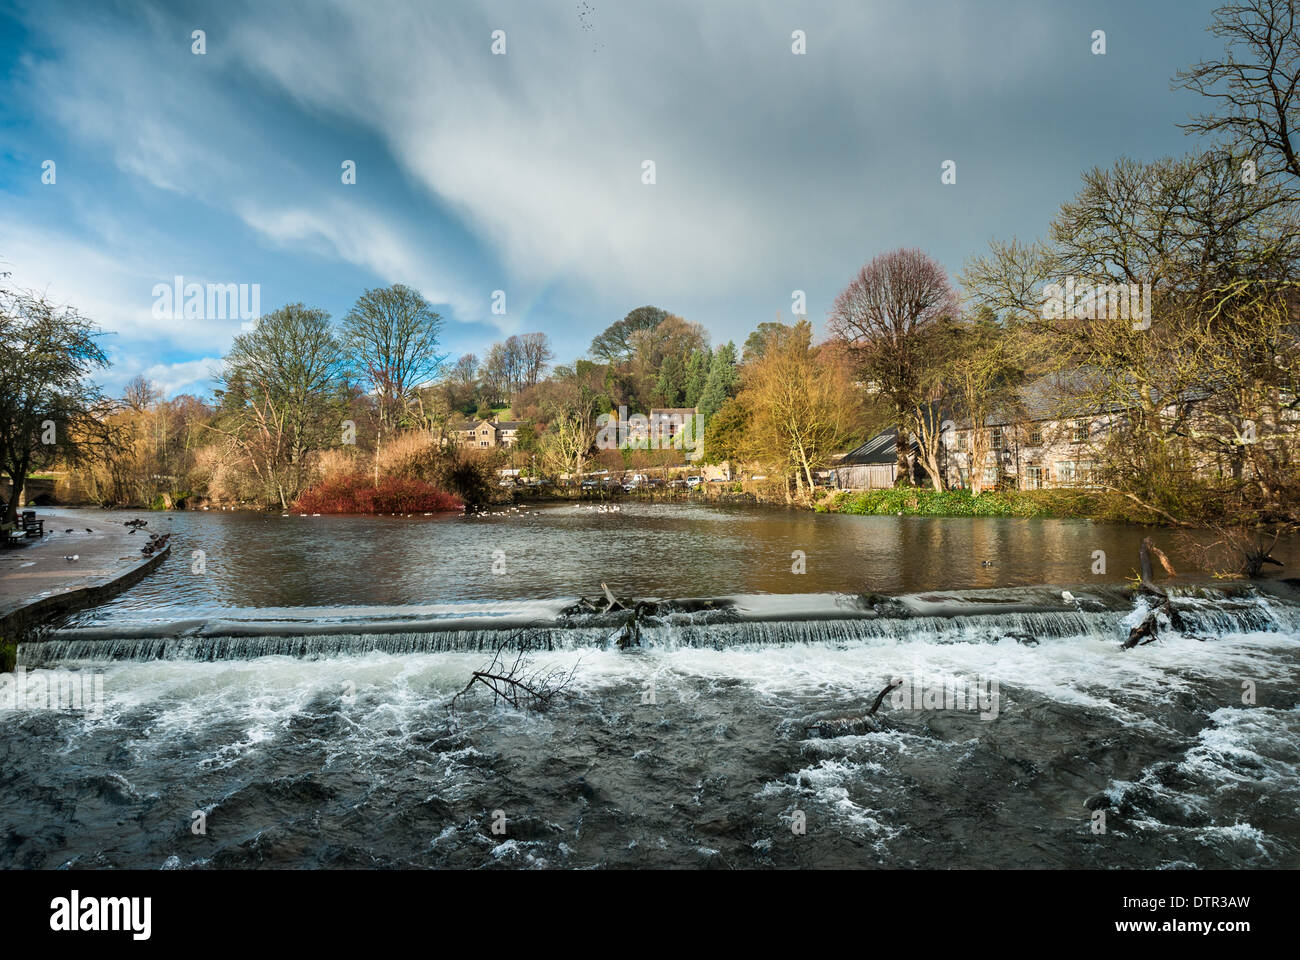 Rough, fast flowing high water on the river Wye, Bakewell. - Stock Image